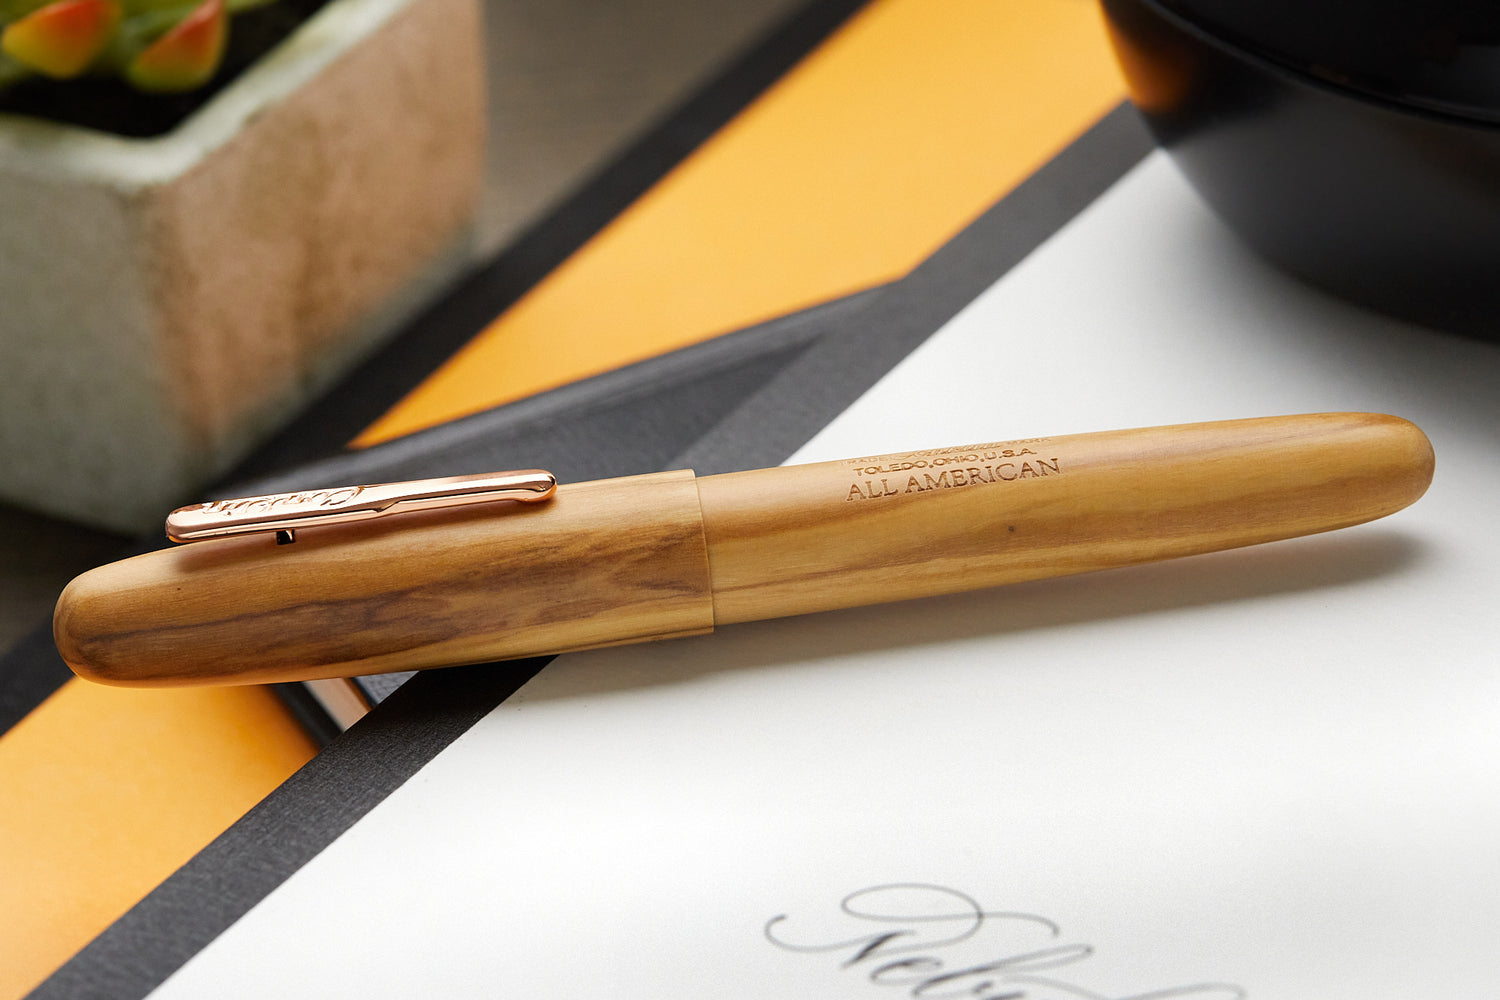 Conklin All American Fountain Pen - Olivewood/Rose Gold (Limited Edition)